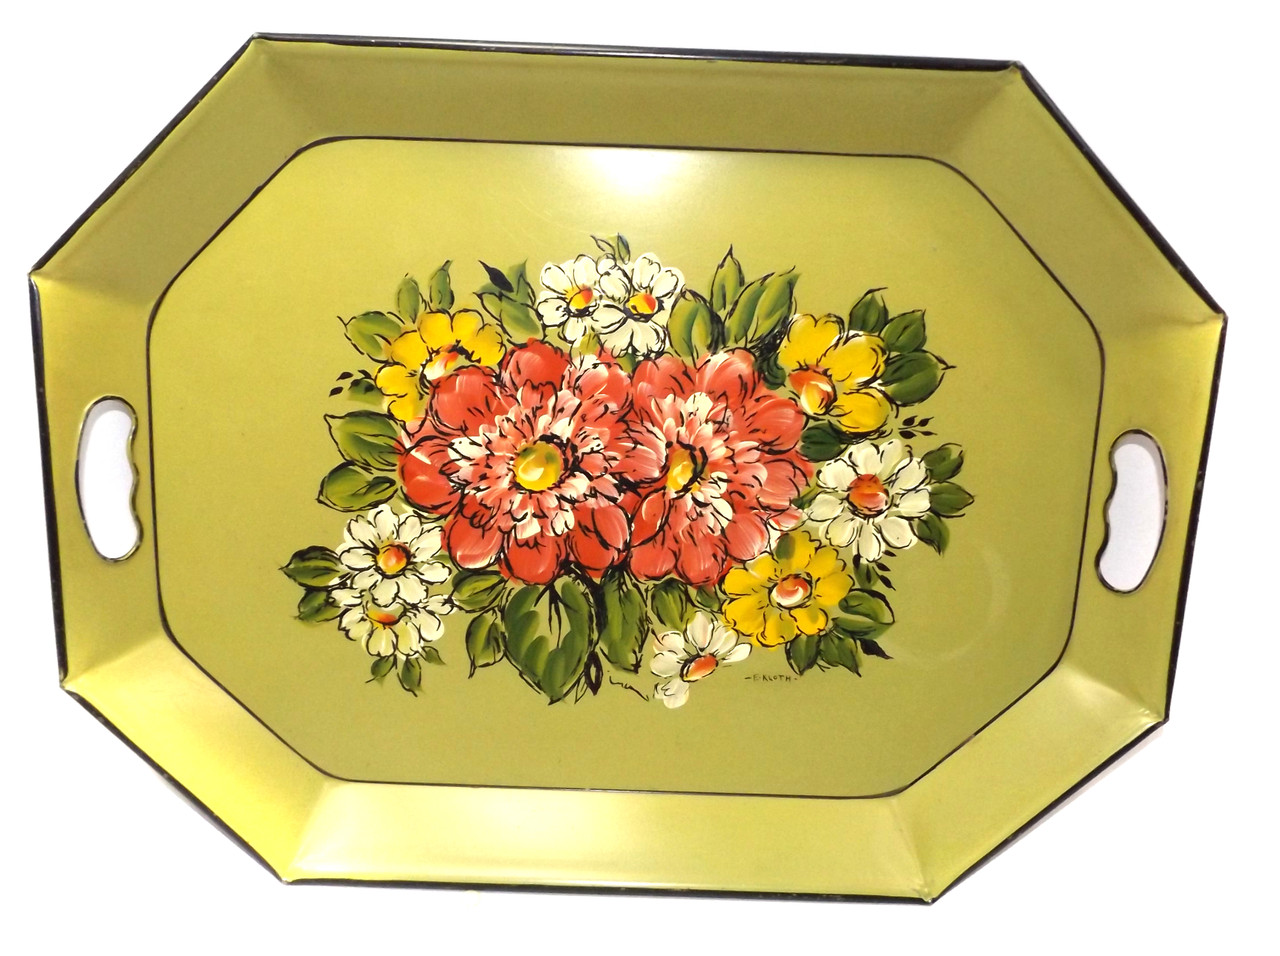 Retro Vintage Metal Octagon Hand Painted Signed Toleware Serving Tray E Kloth